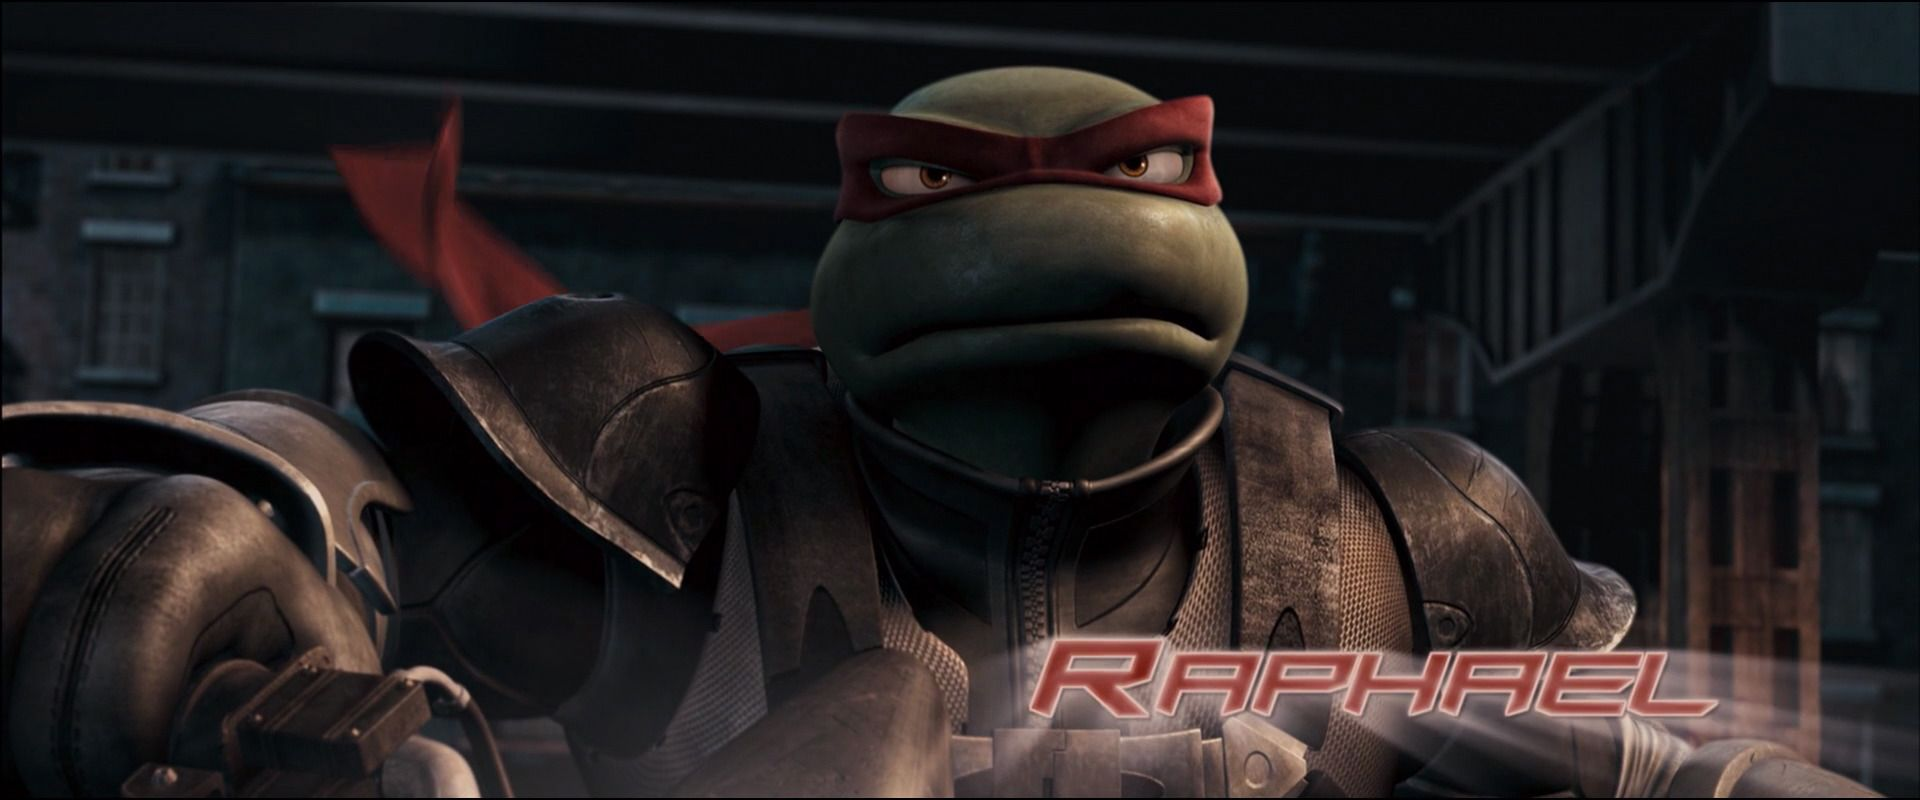 Screencap Gallery For Tmnt 2007 1080p Bluray Imagi Animation Studios After The Defeat Of Their Old Arc Tmnt Teenage Mutant Ninja Turtles Animation Studio